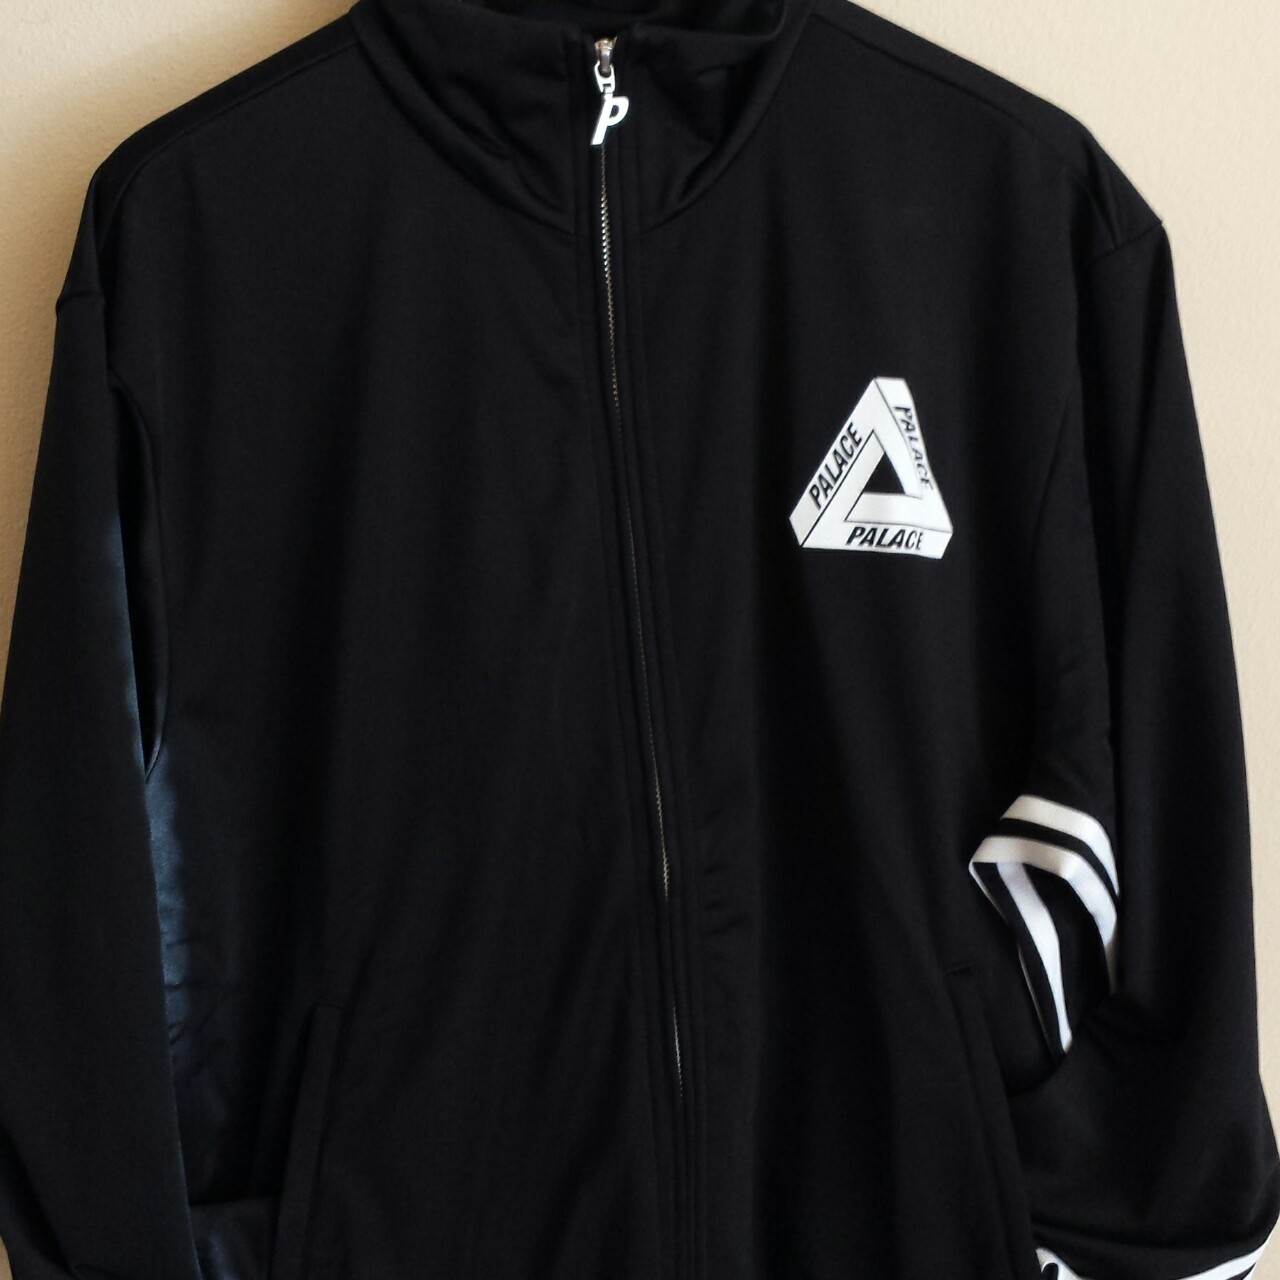 Palace x Adidas Firebird Track Top Jacket in Black Depop